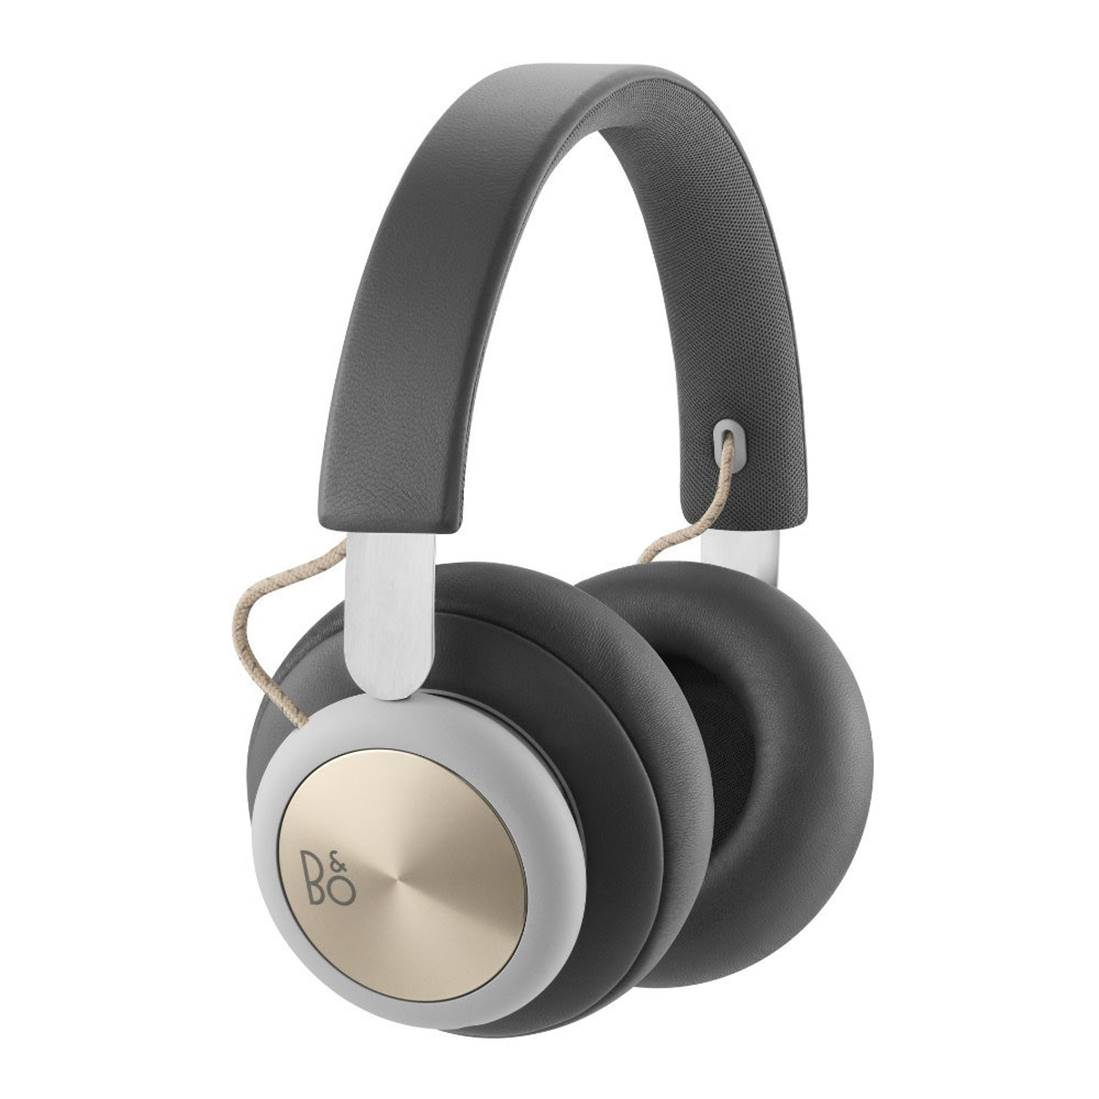 B&O Beoplay H4 Headphones